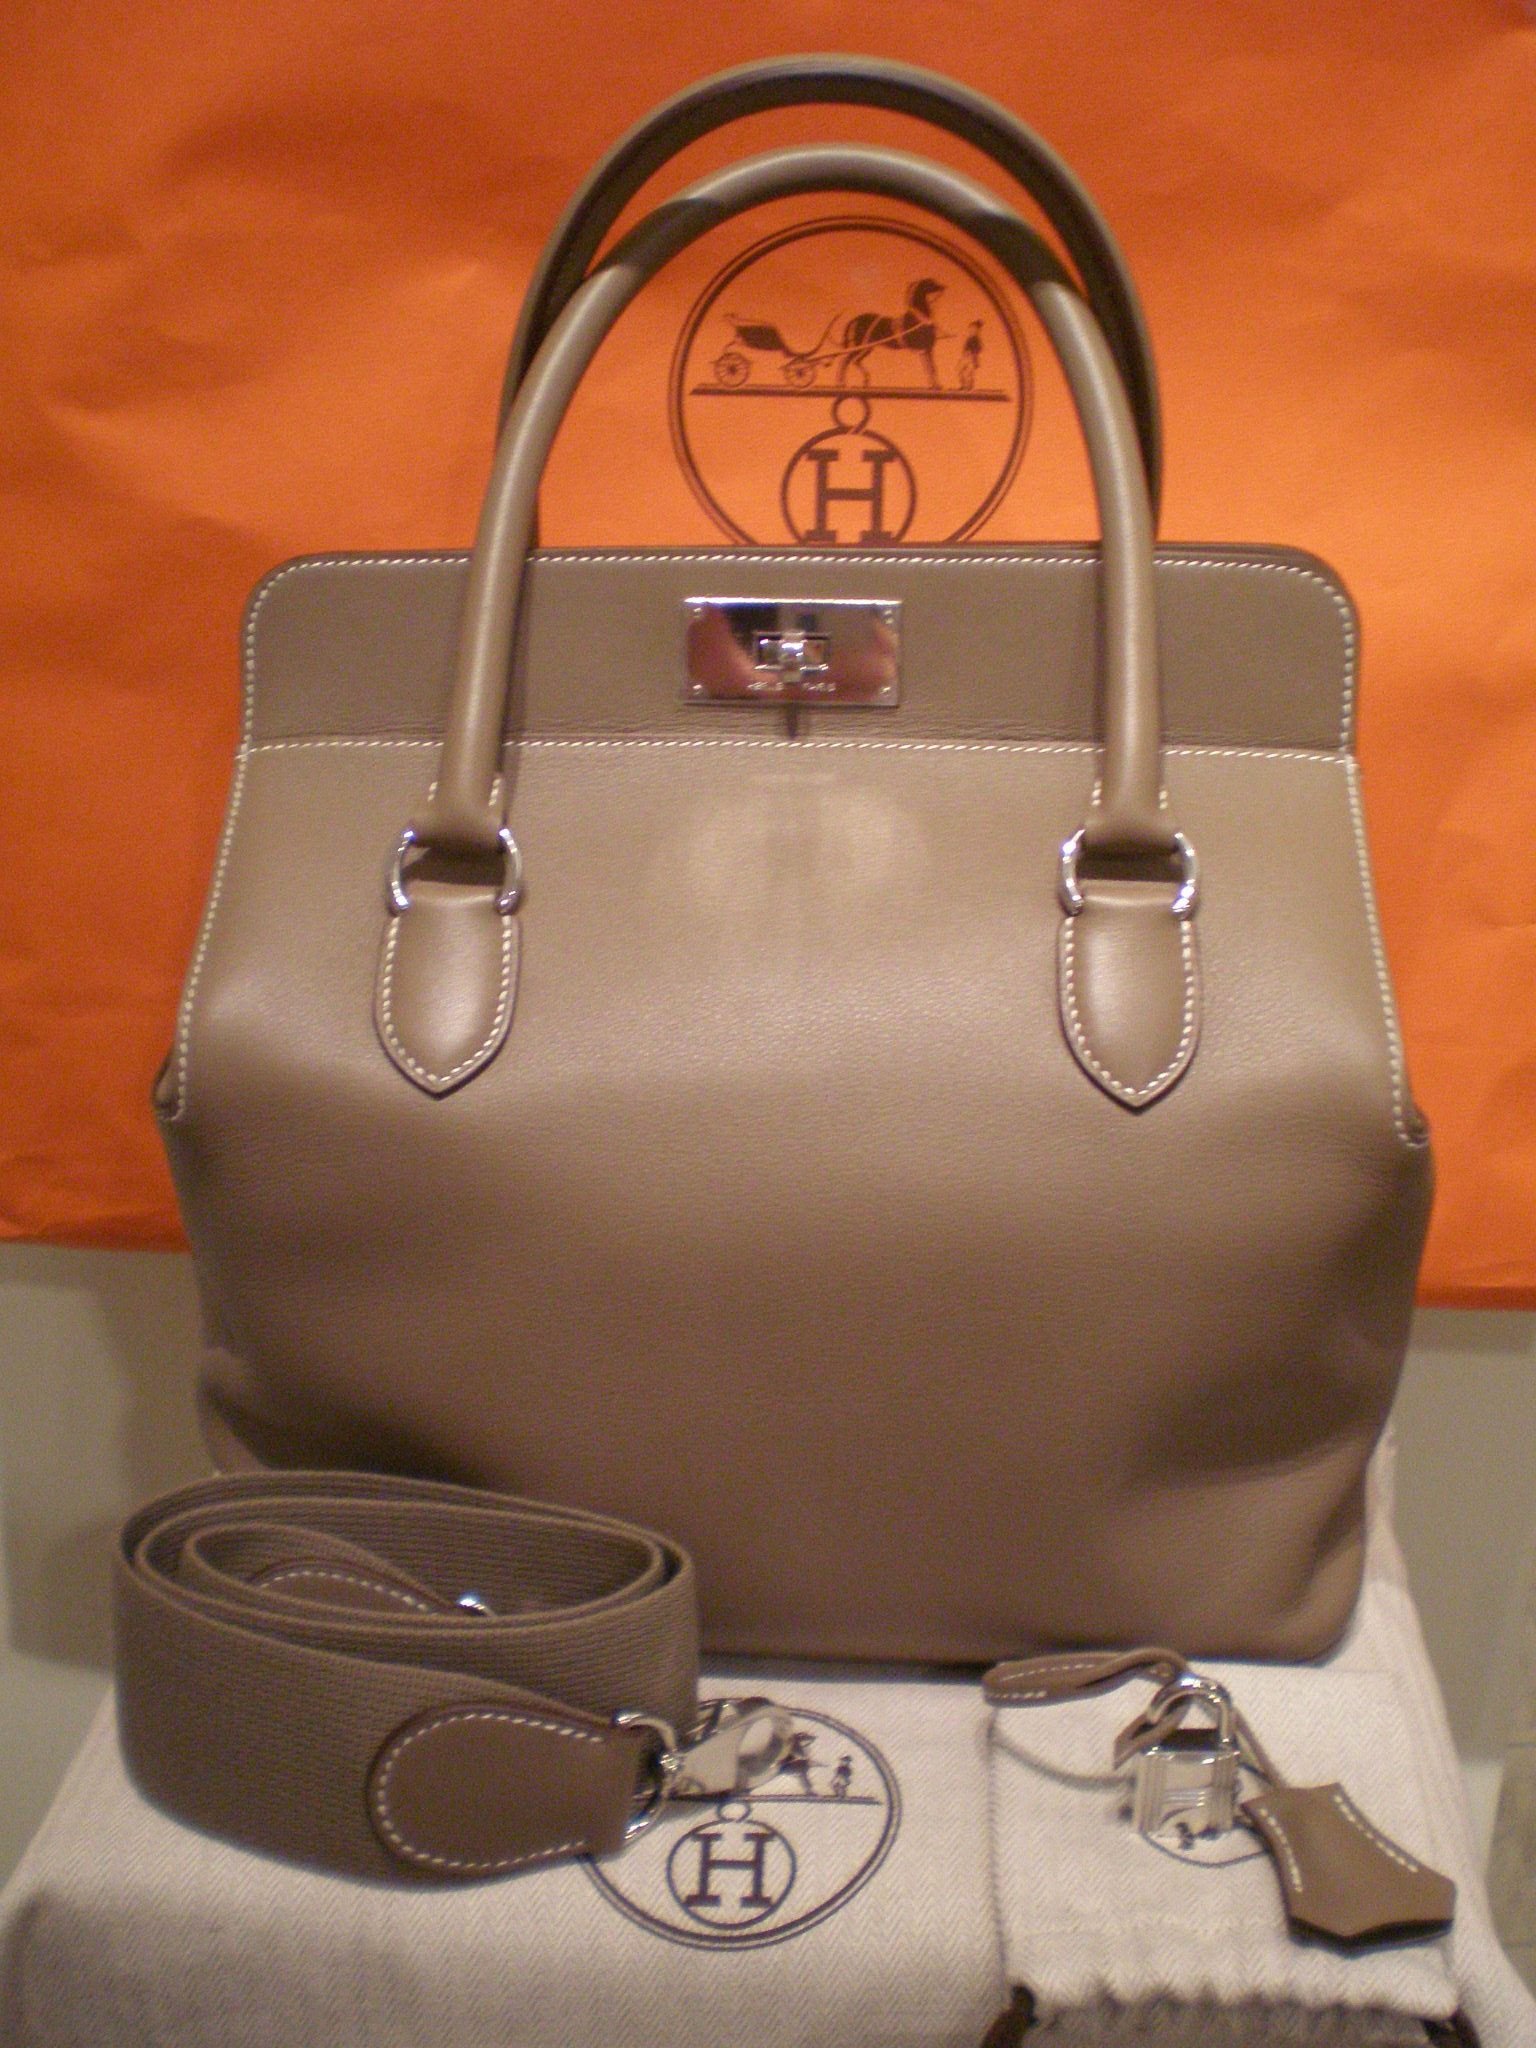 HERMES TOOLBOX BAG!!!!!!!!!!!!!!! SOMEDAY.